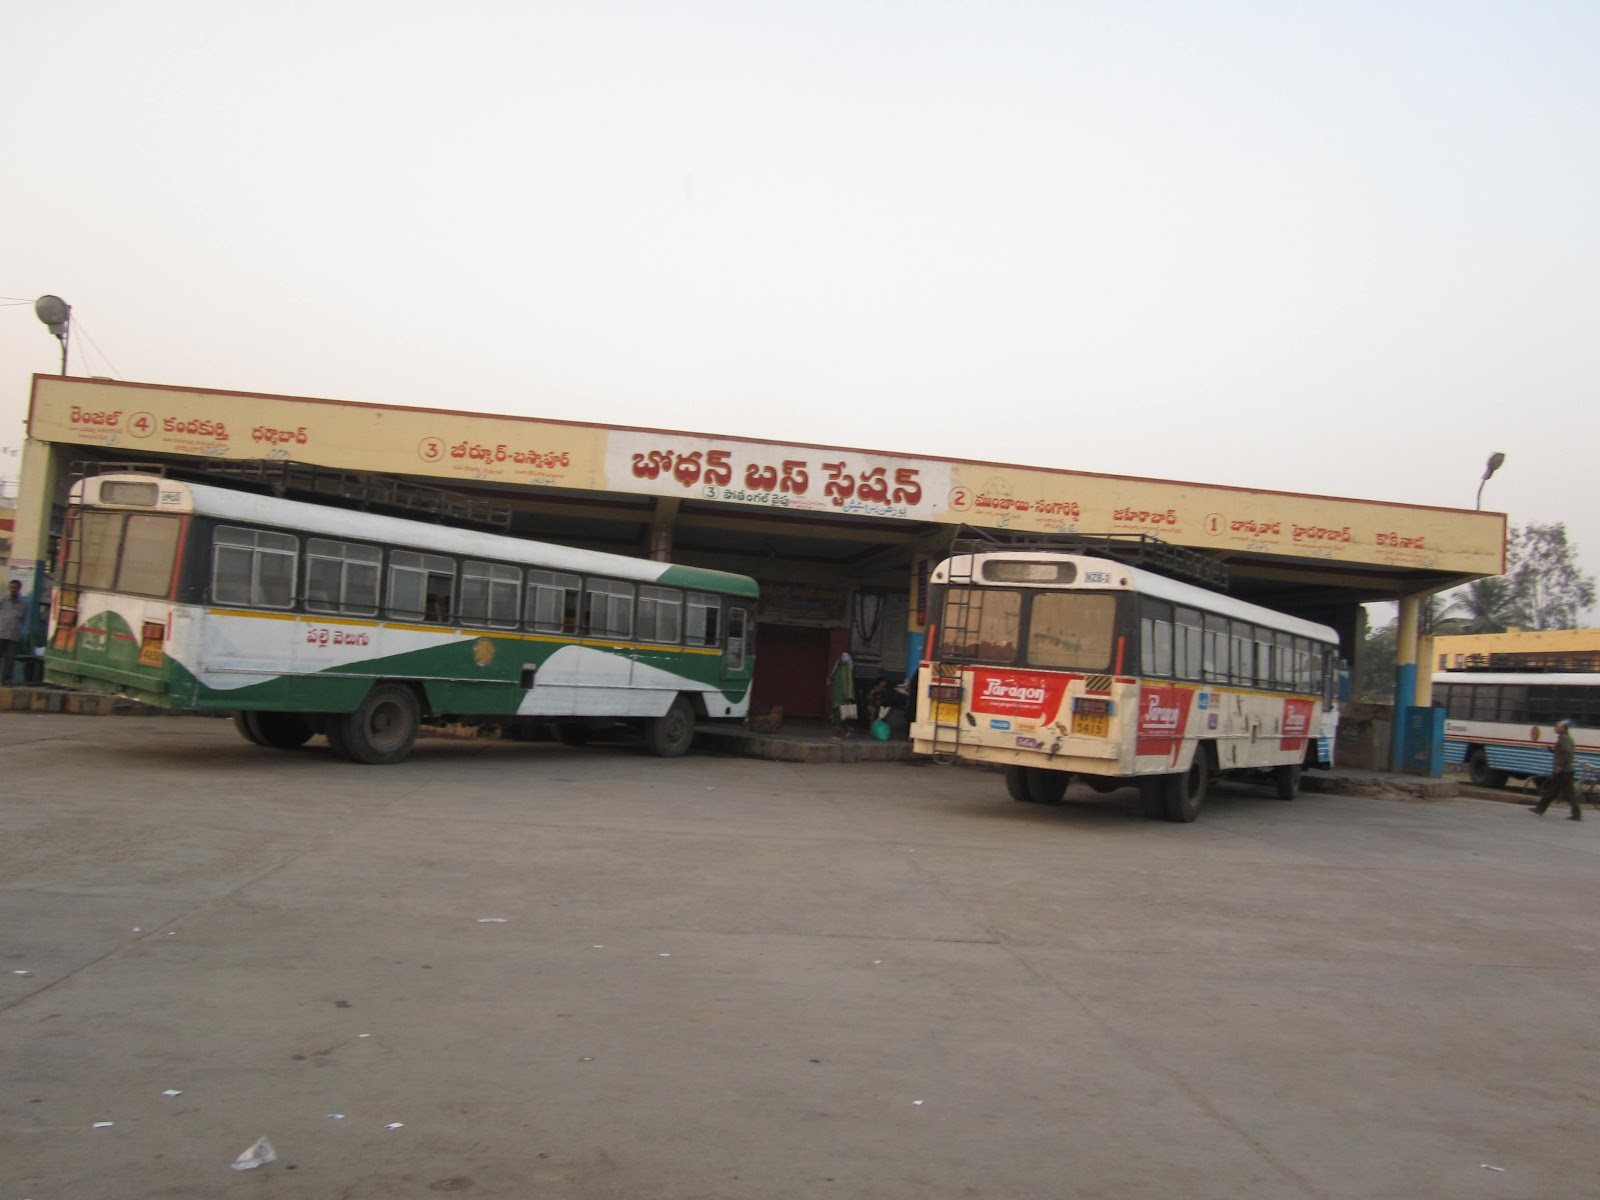 a scene at bus stand A bus stand, also called a bus bay, is a designated parking location where a bus or coach waits out of service between scheduled public transport services.